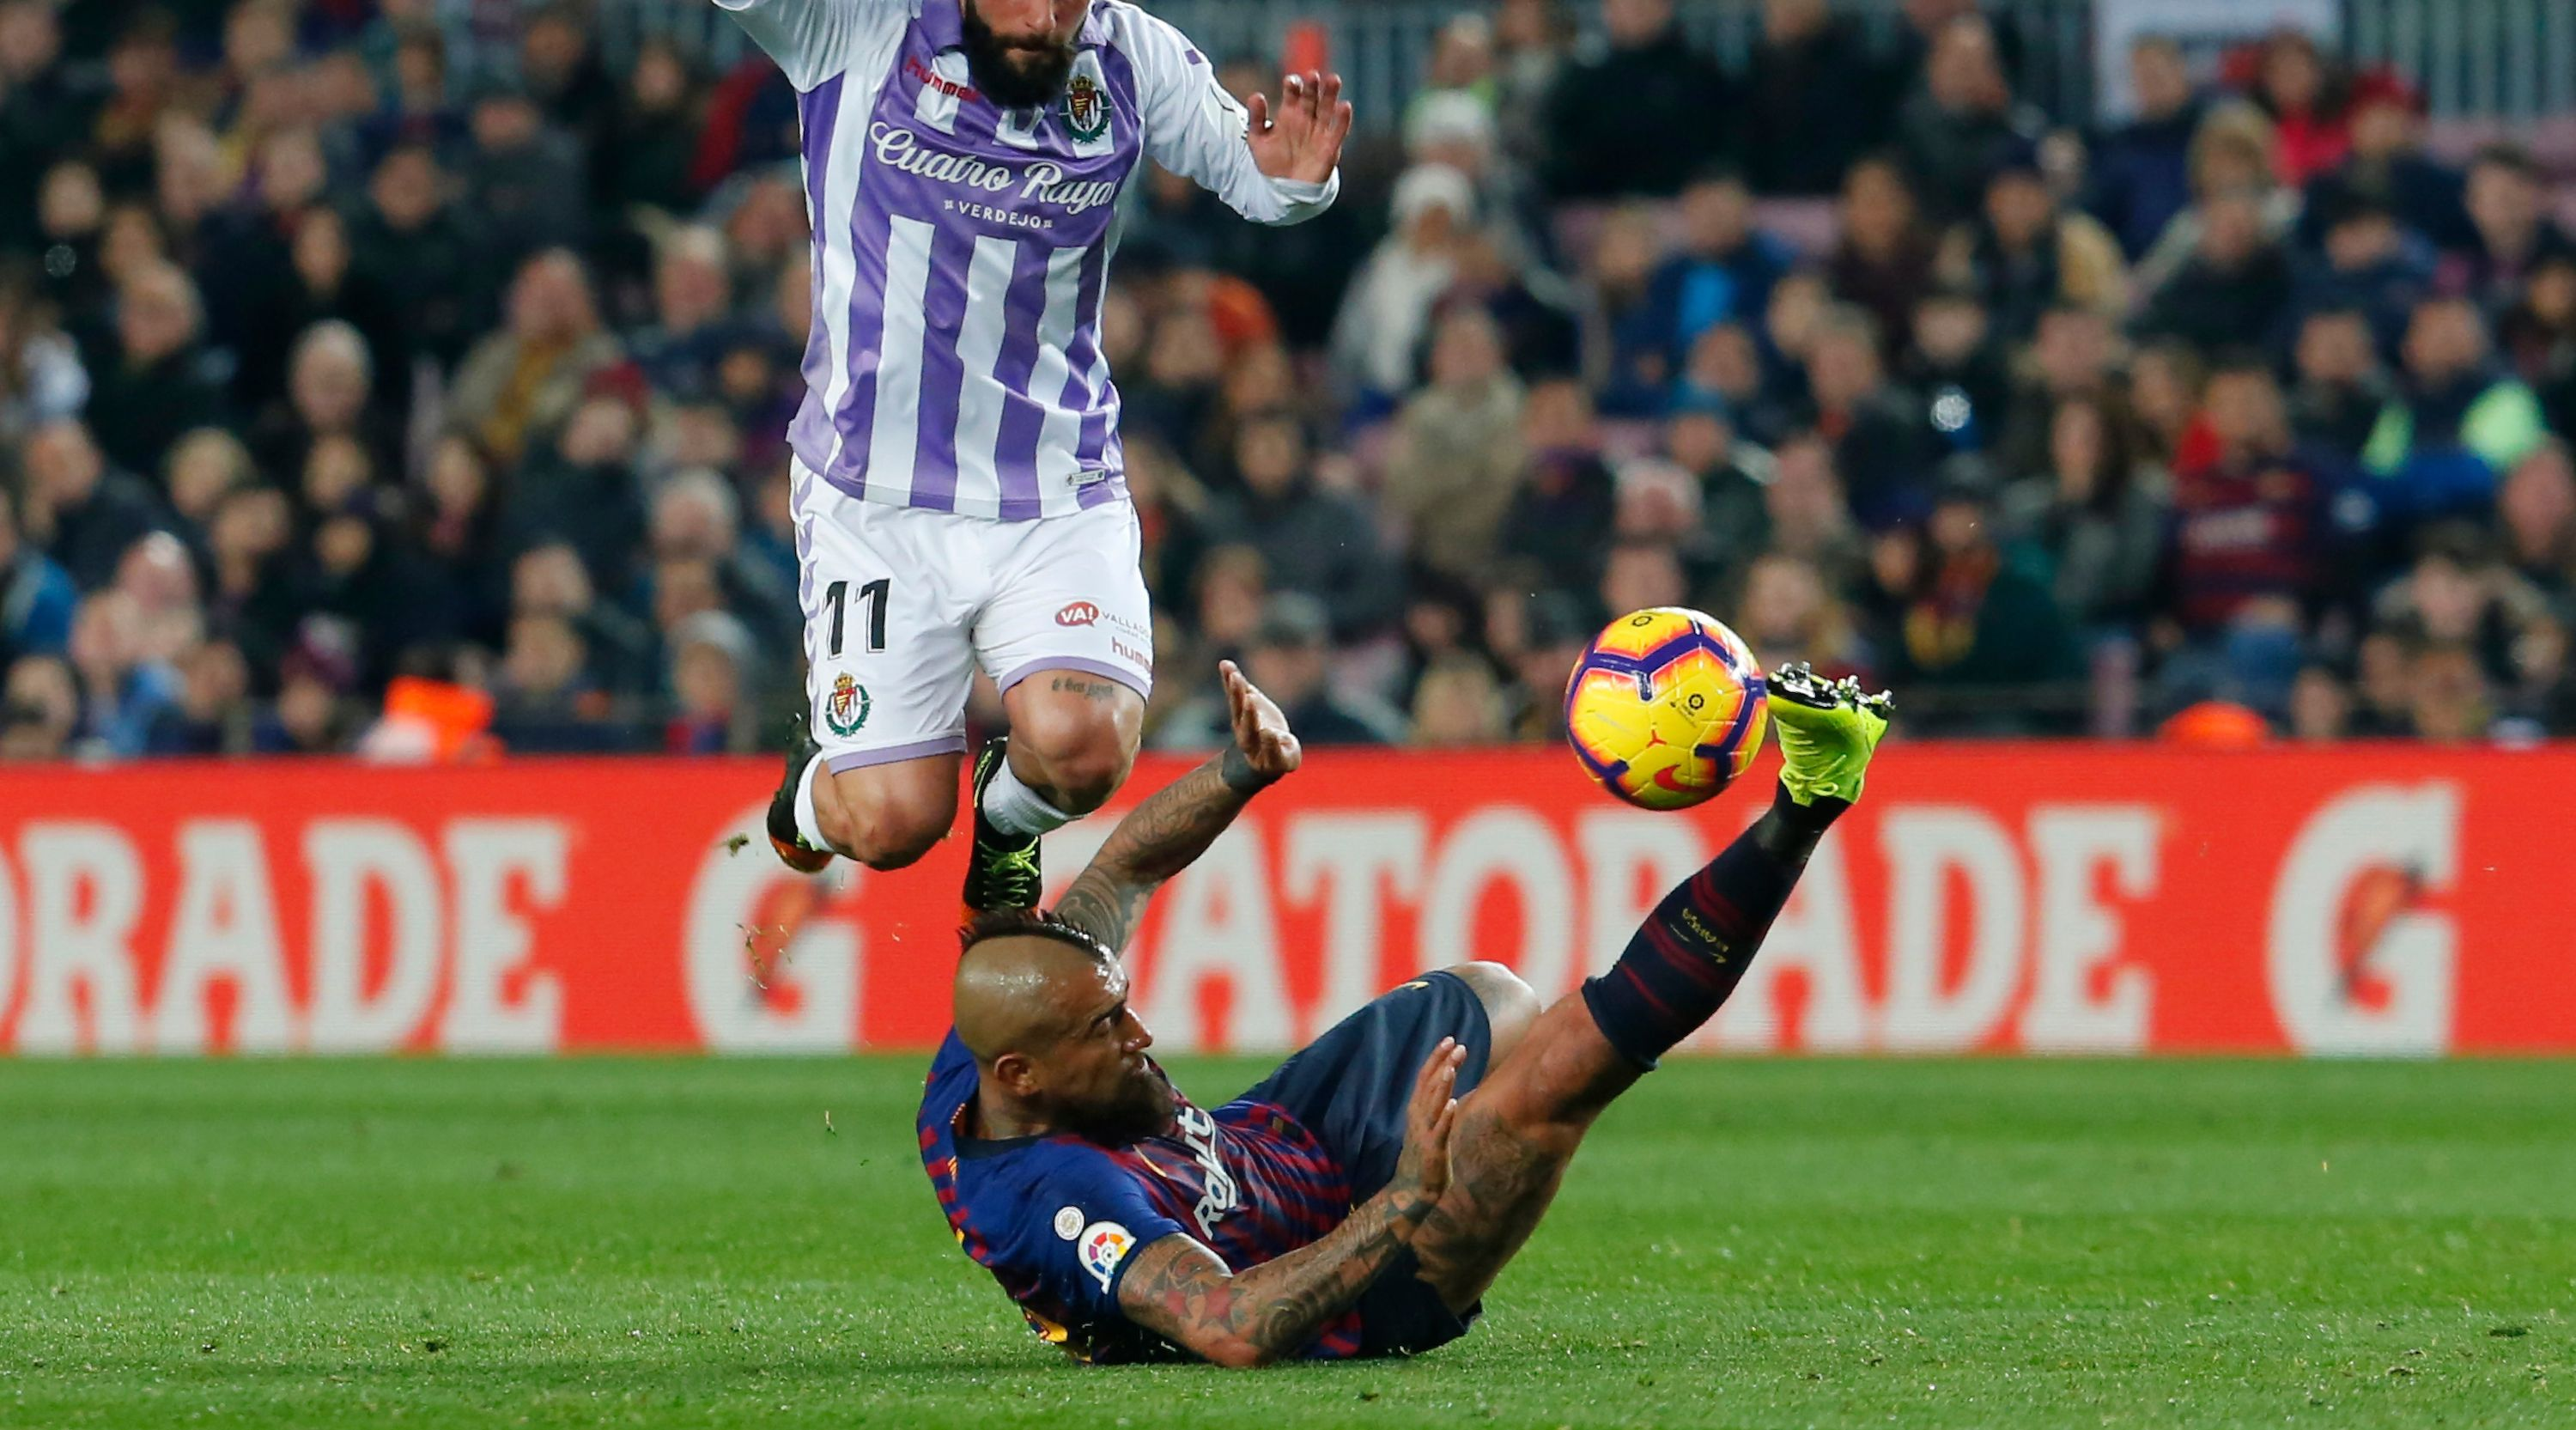 Real Valladolid's Italian midfielder Daniele Verde (L) vies for the ball with Barcelona's Chilean midfielder Arturo Vidal during the Spanish League football match between Barcelona and Real Valladolid at the Camp Nou stadium in Barcelona on February 16, 2019. (Photo by Pau Barrena / AFP) (Photo credit should read PAU BARRENA/AFP/Getty Images)